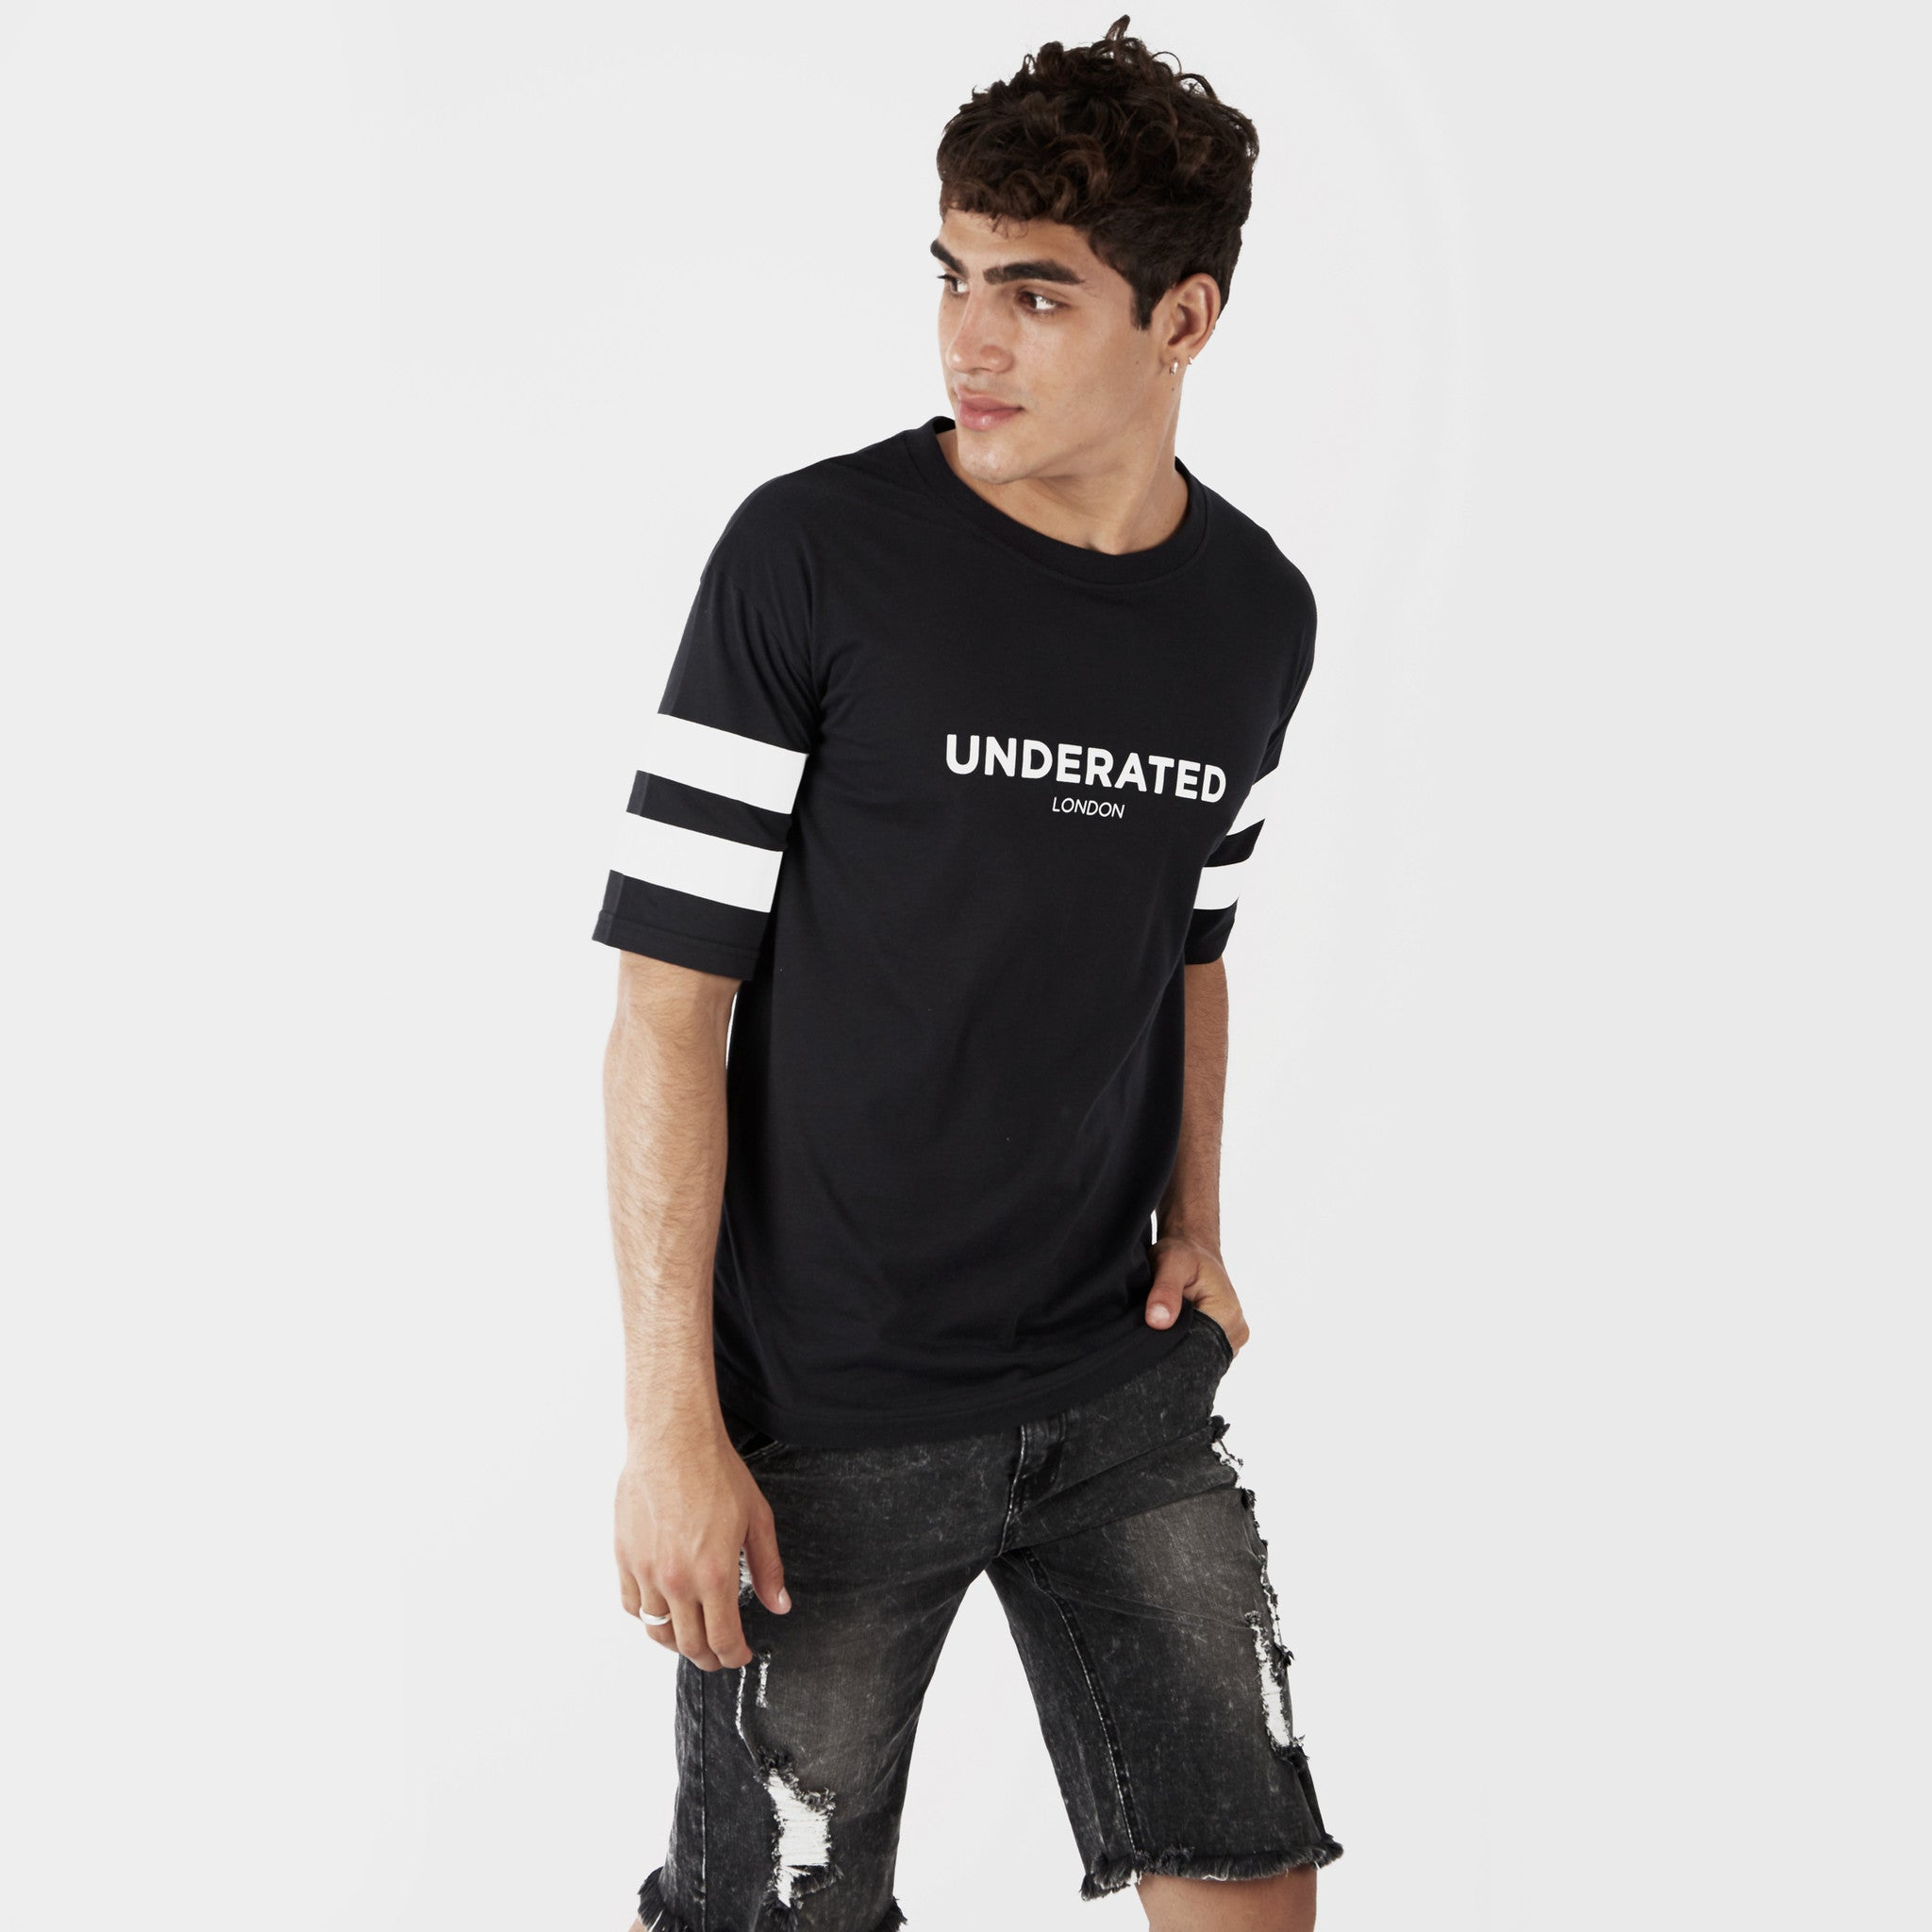 TS404 Print Tee - Black - underated london - underatedco - 6